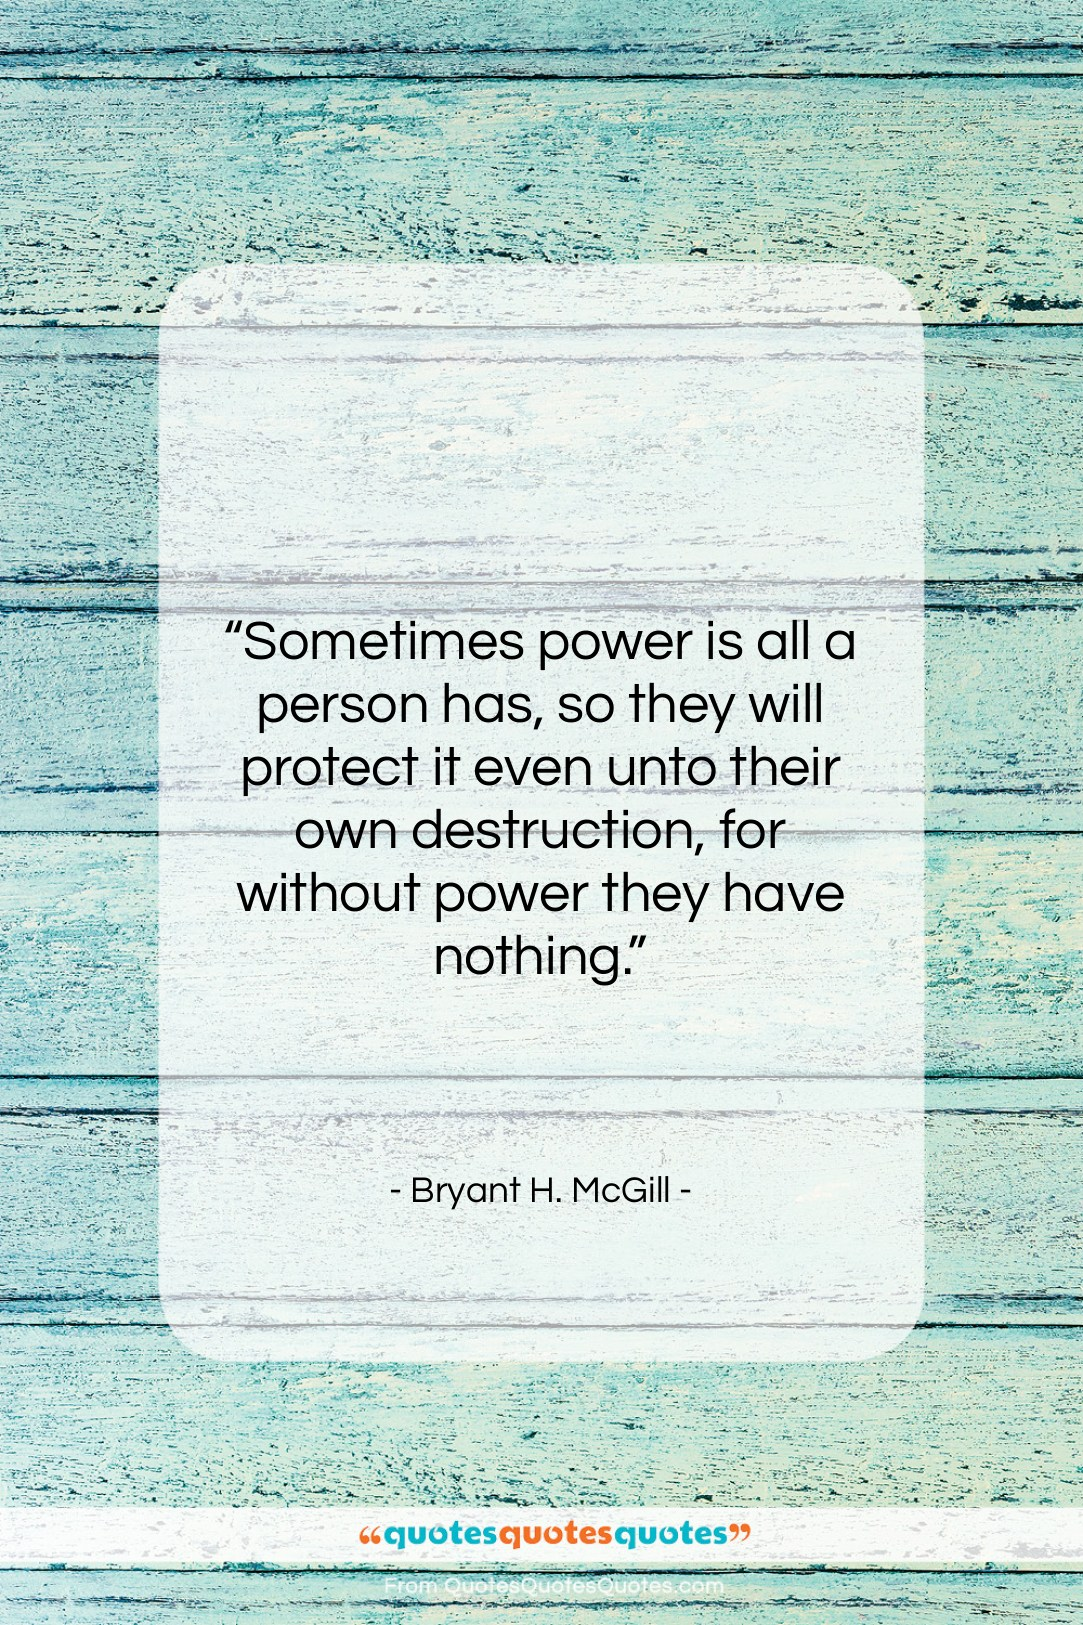 """Bryant H. McGill quote: """"Sometimes power is all a person has,…""""- at QuotesQuotesQuotes.com"""